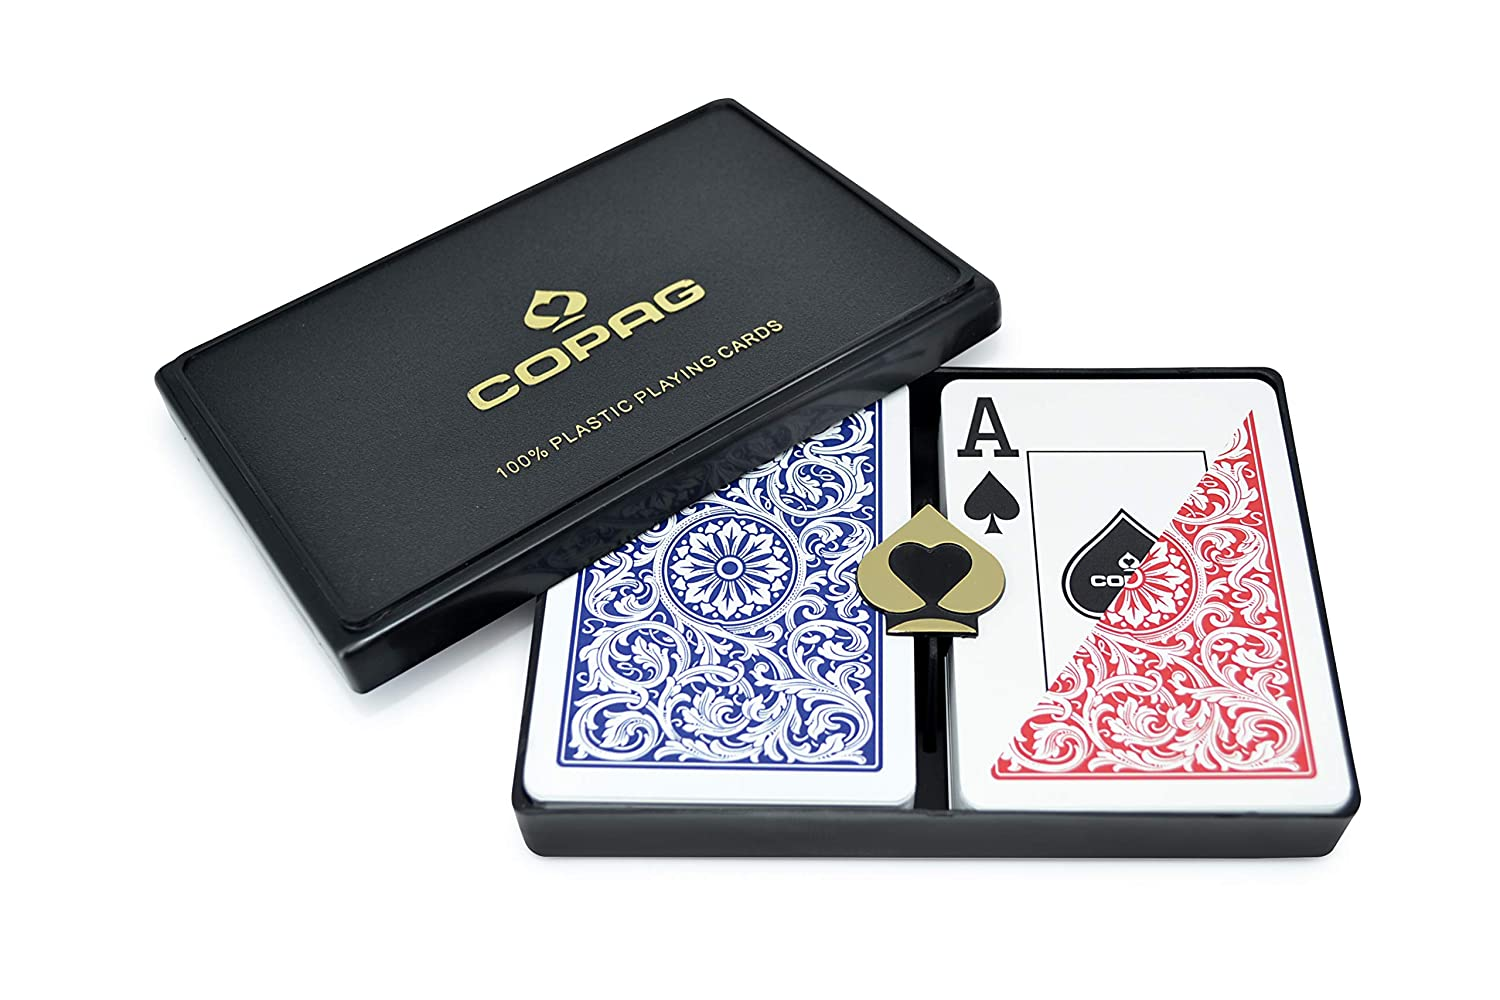 B000SA5BJ2 Copag Poker Size Jumbo Index 1546 Playing Cards (Blue Red Setup) 81eeaXKptSL